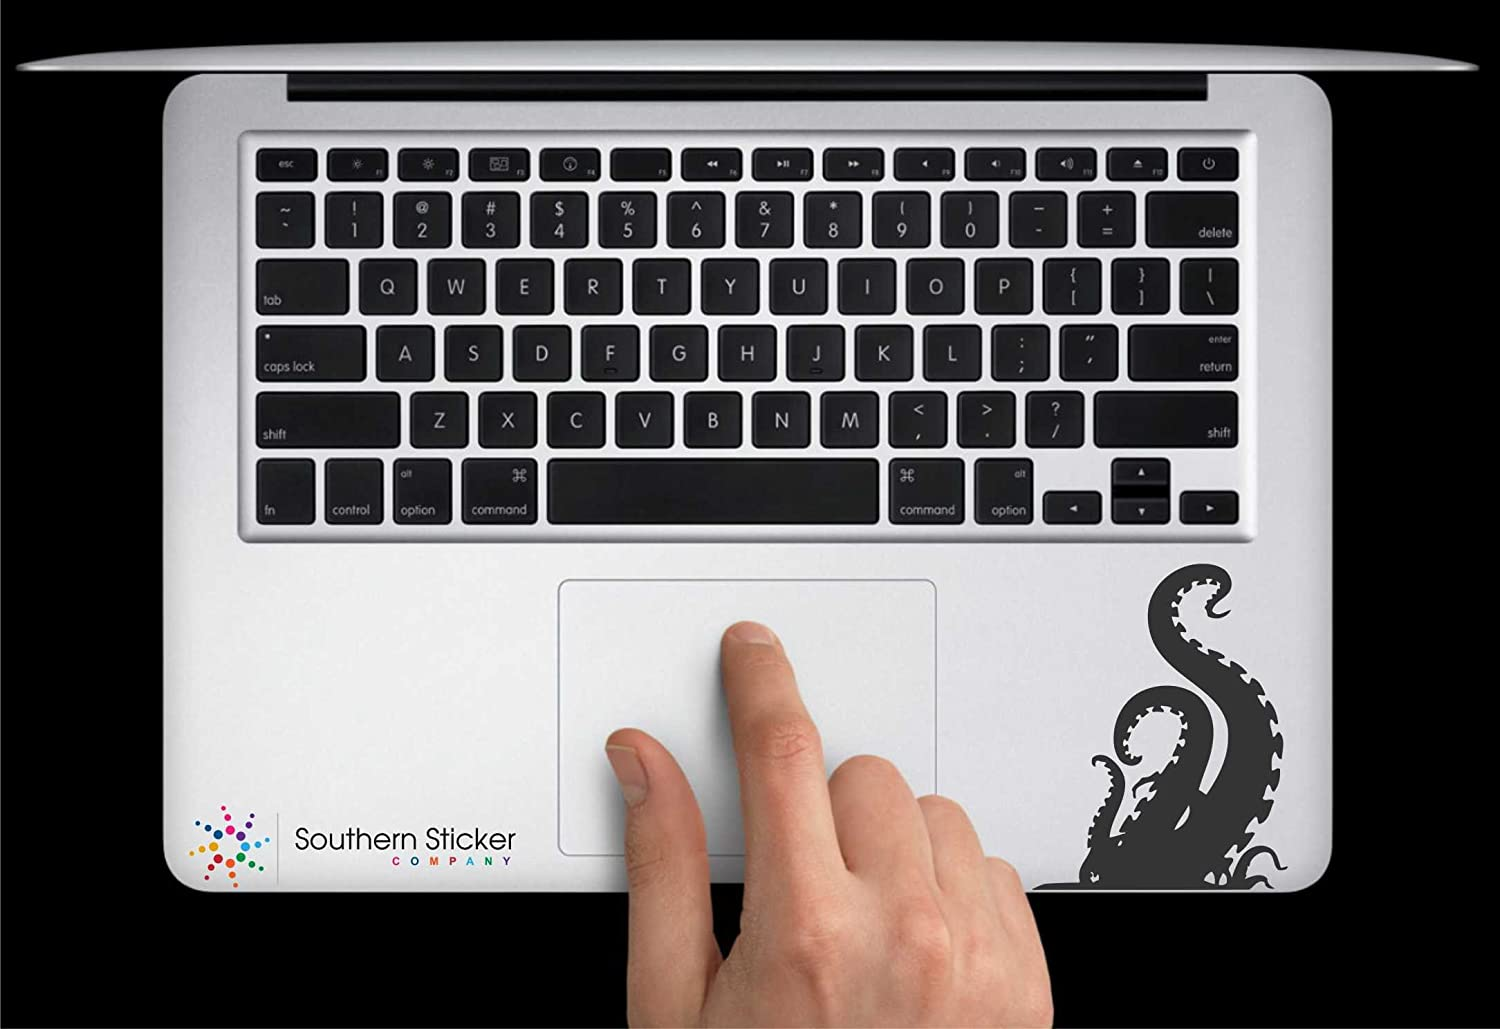 Kraken From Bottom Vinyl Car Sticker Symbol Silhouette Keypad Track Pad Decal Laptop Skin Ipad Macbook Window Truck Motorcycle